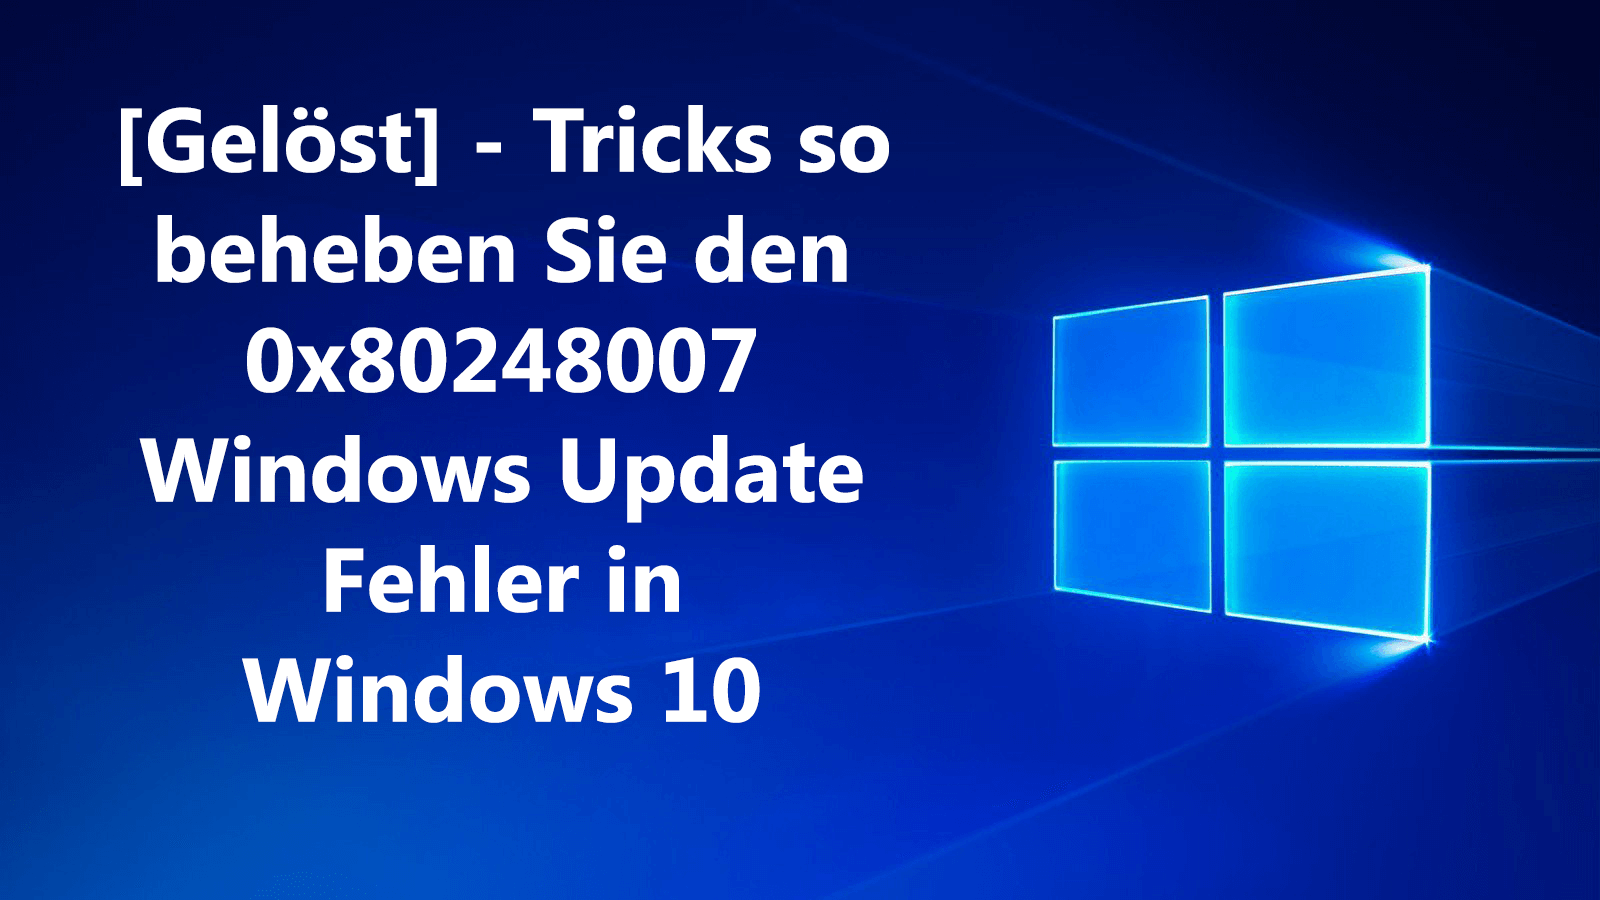 Fehler 0x80248007 in Windows 10